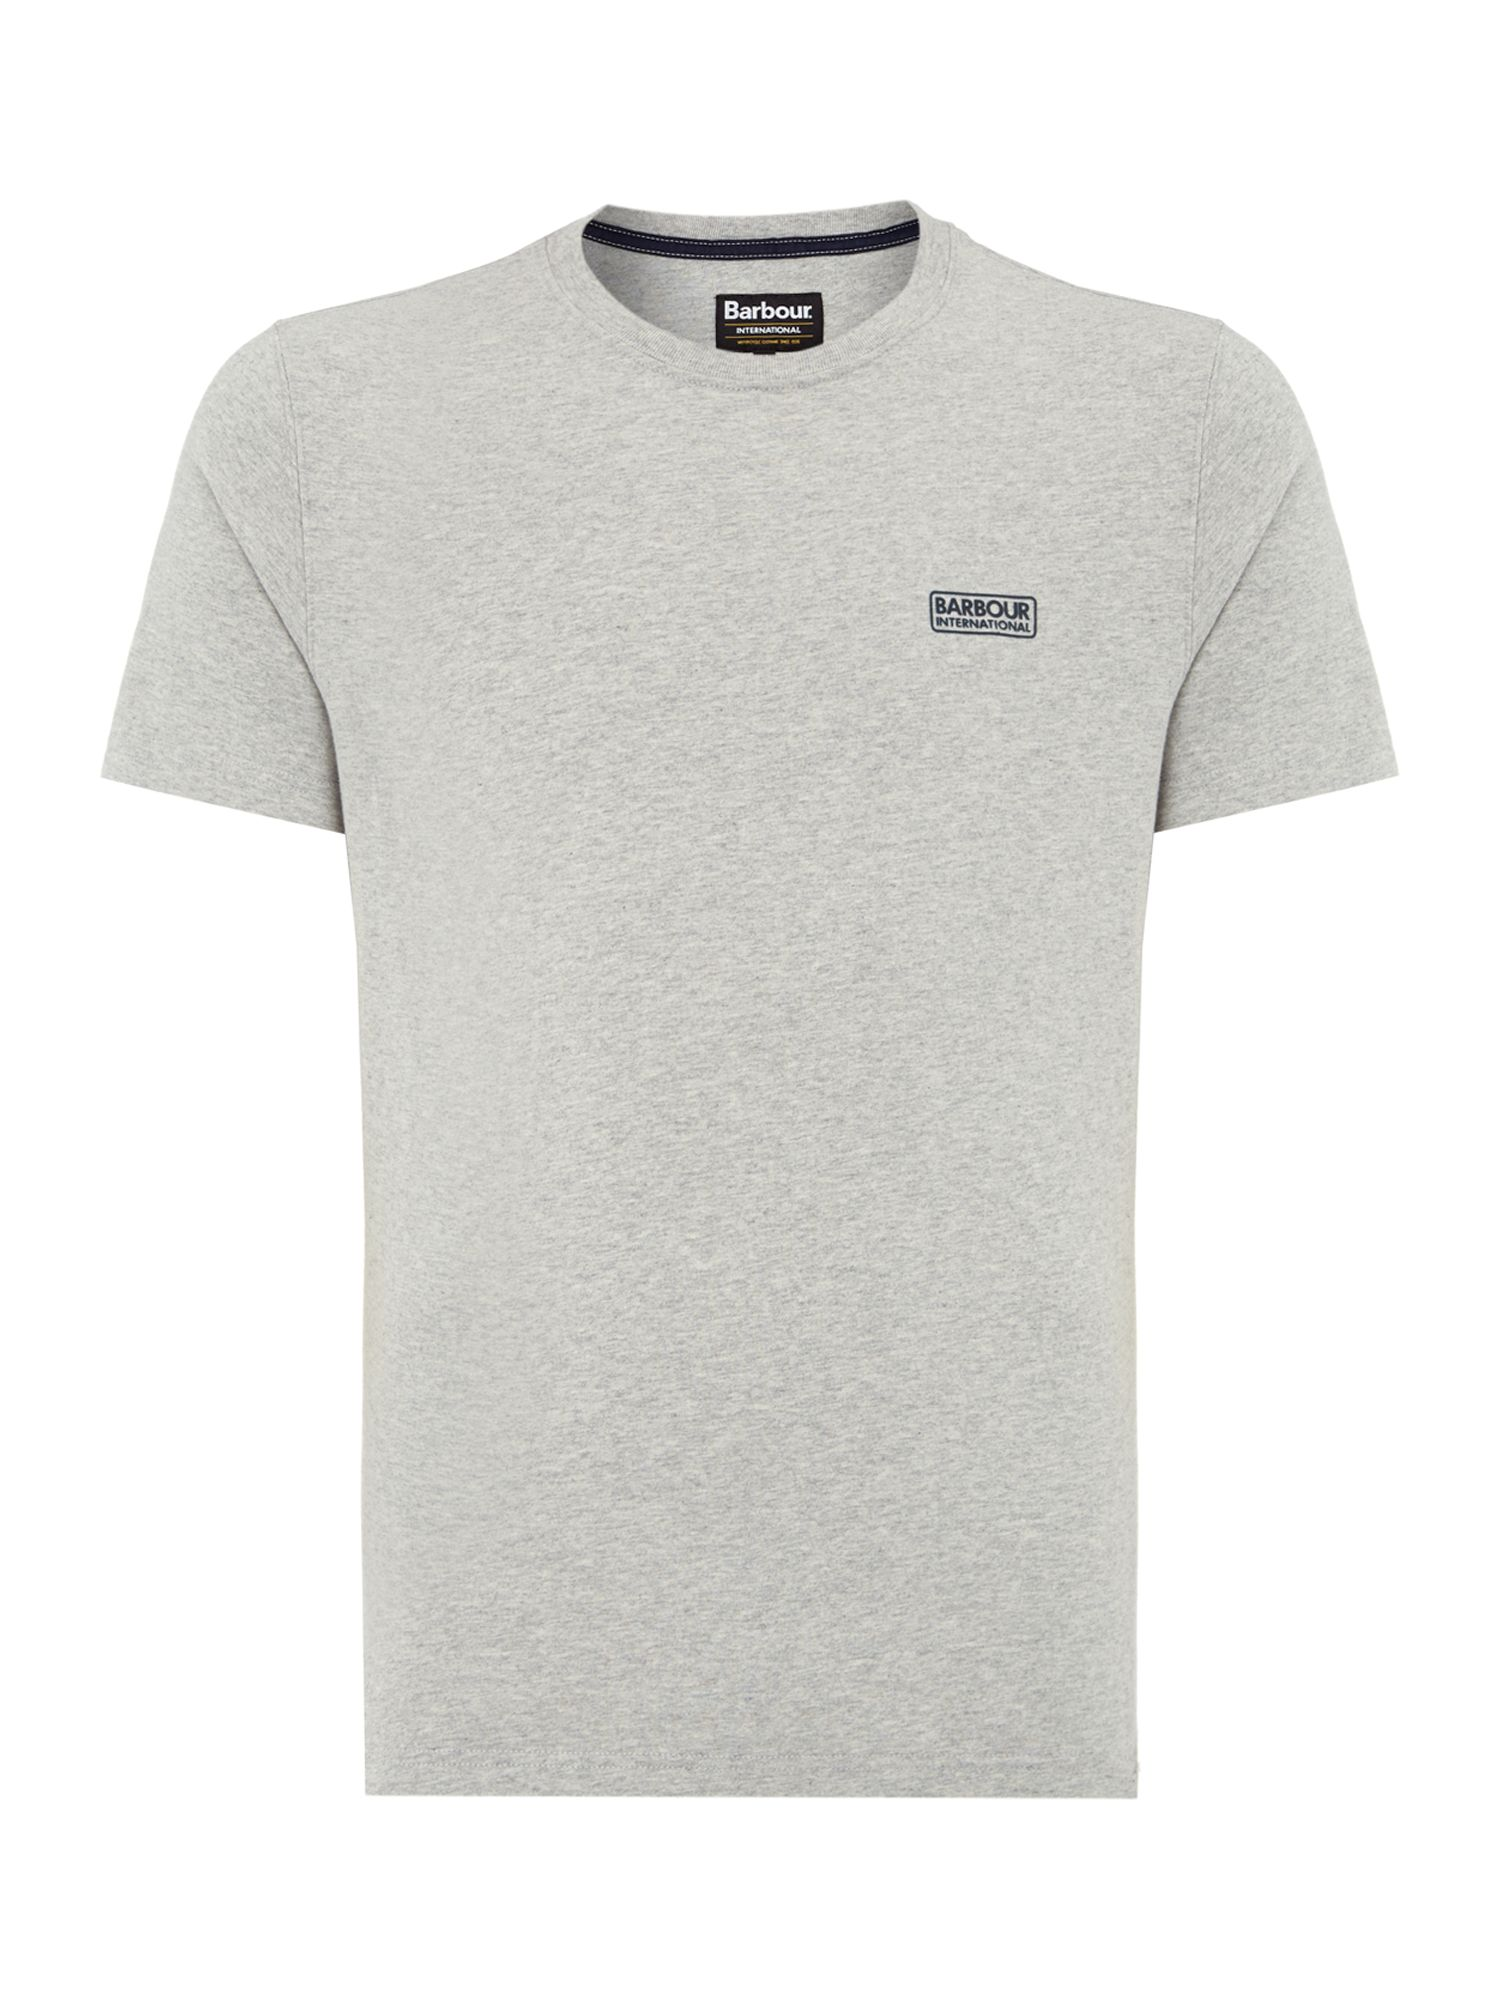 Men's Barbour International small logo T-Shirt, Grey Marl